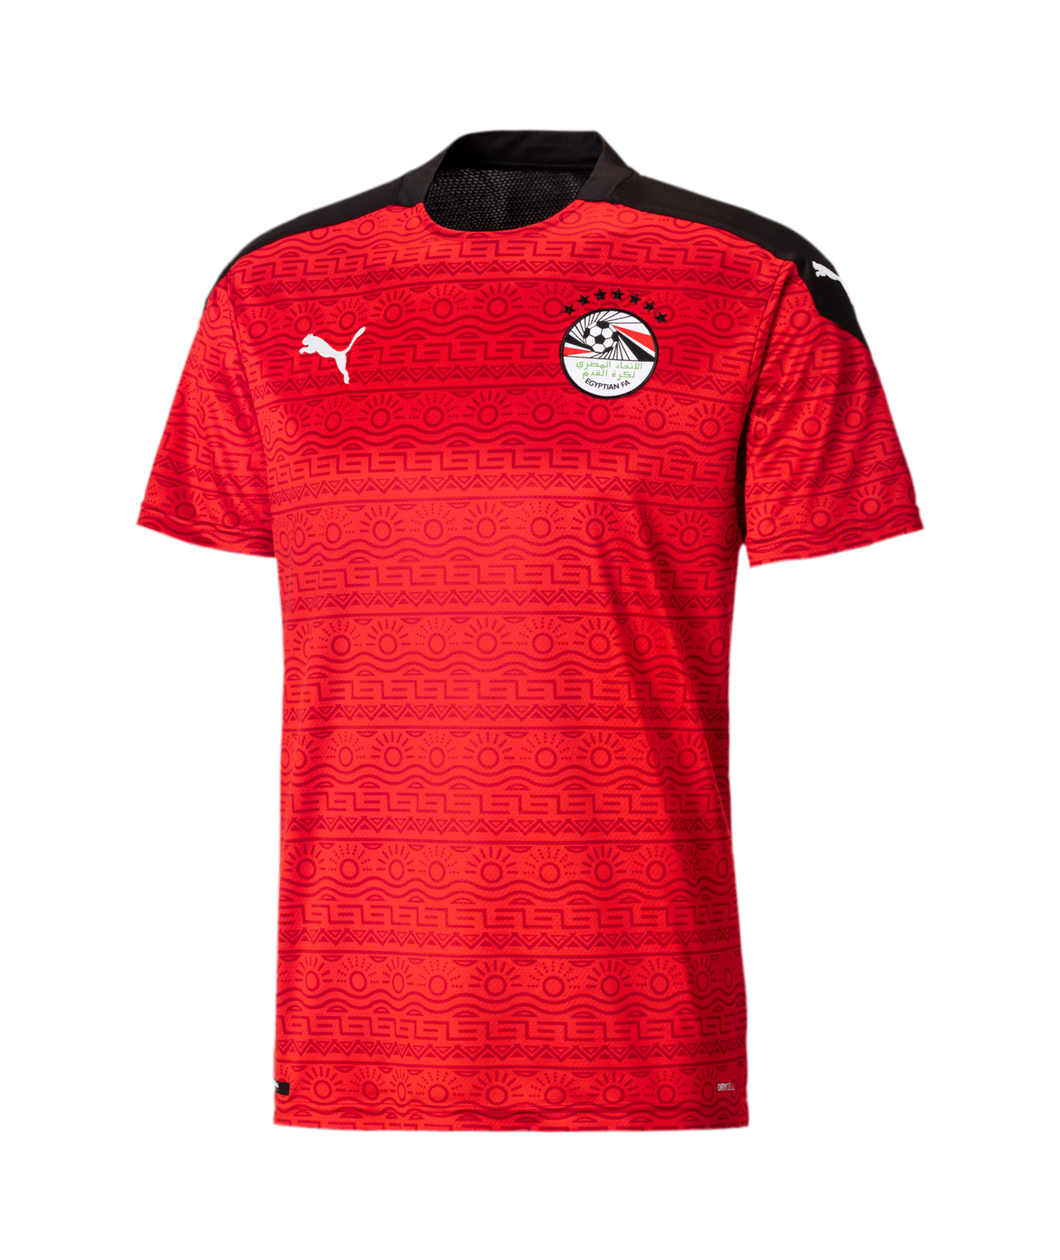 Puma Men's Egypt Home Jersey 2020-21 RED/WHITE -PUMA BLACK 75754101